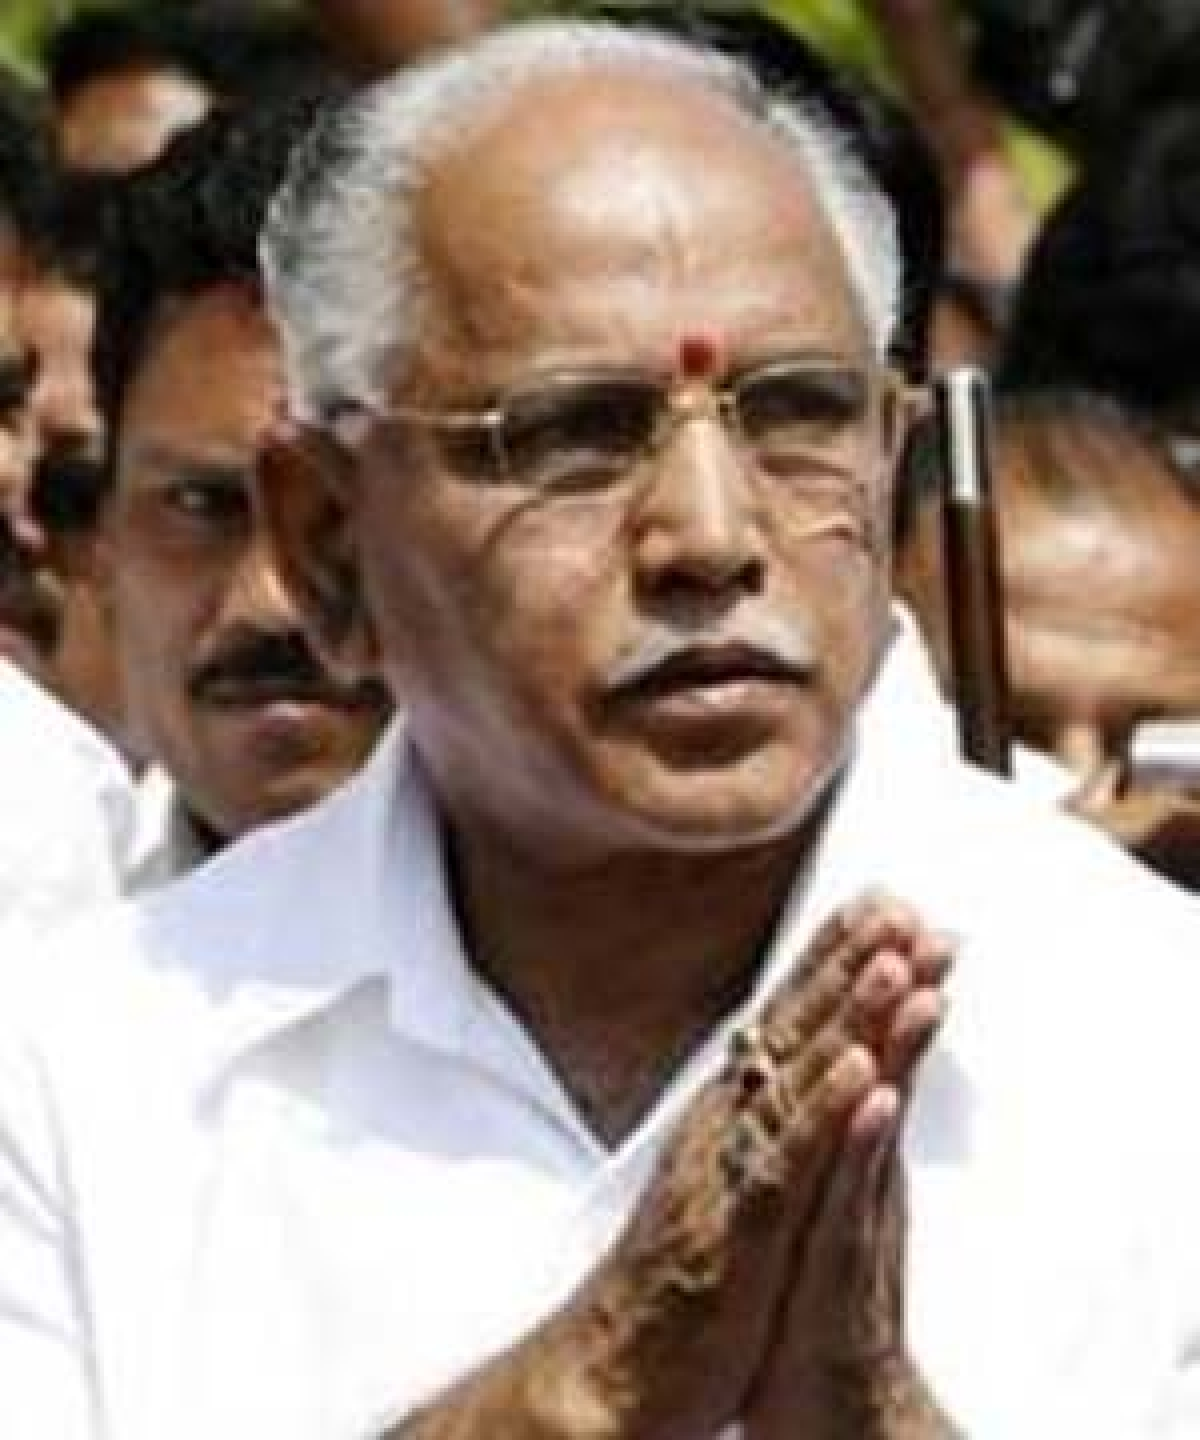 New party: Yeddy claims backing of K'taka MLAs